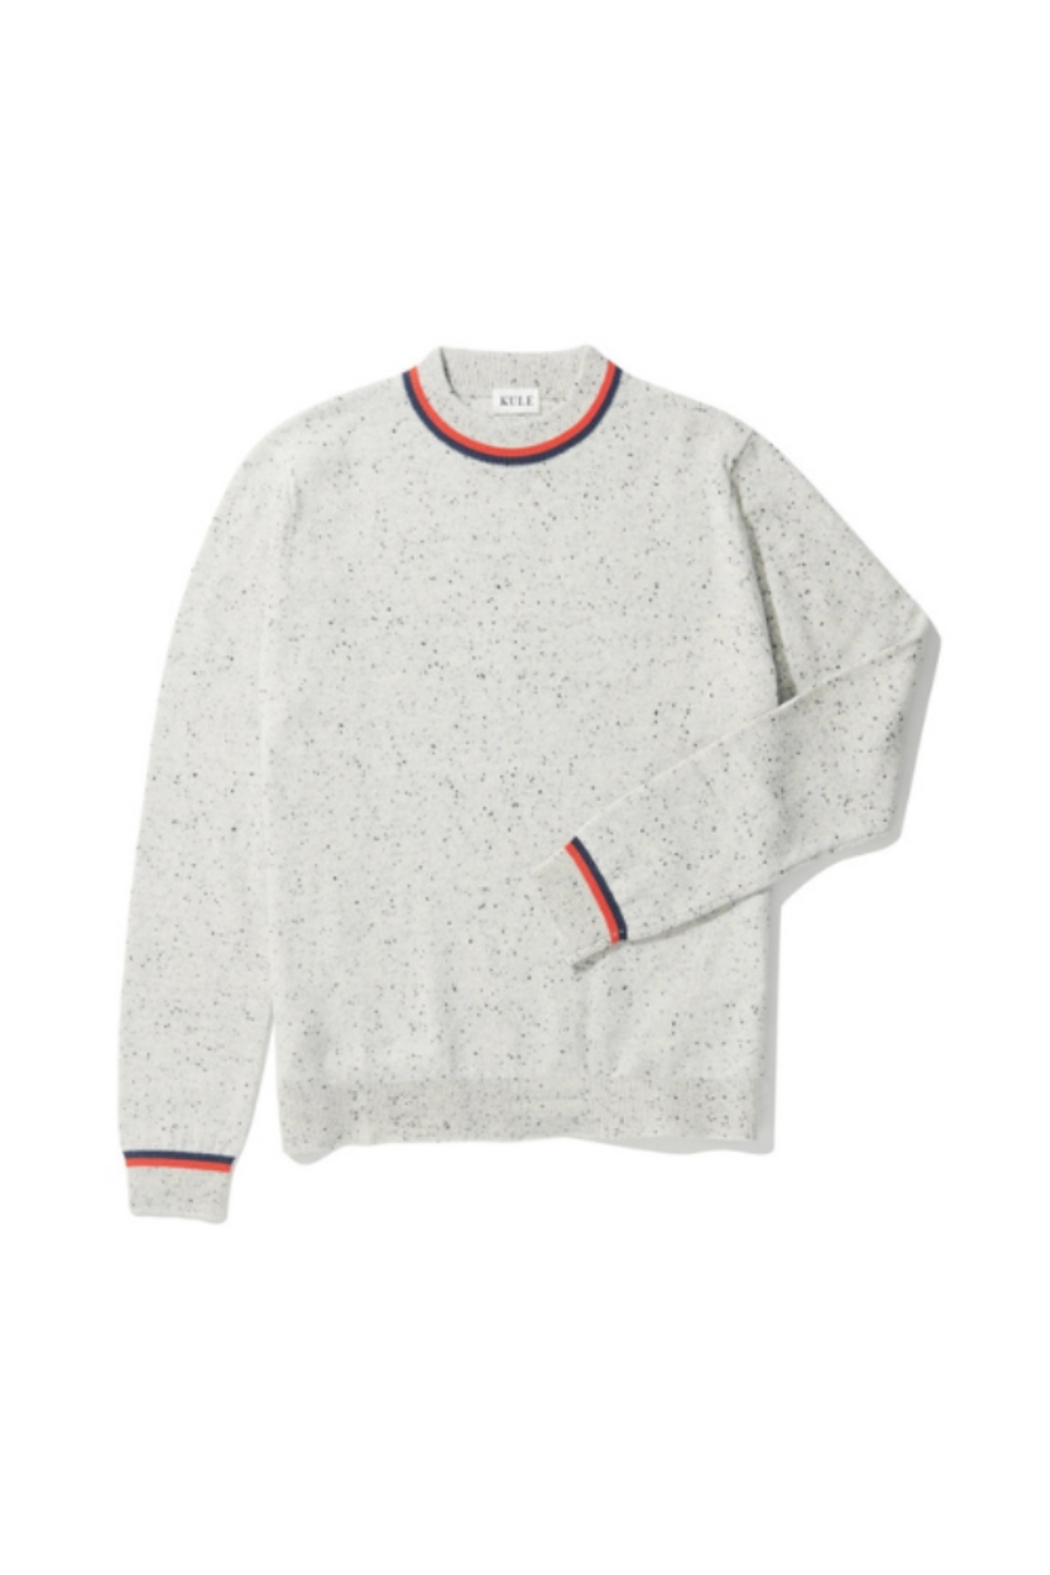 Kule The Montana Heather Grey Sweater - Front Full Image